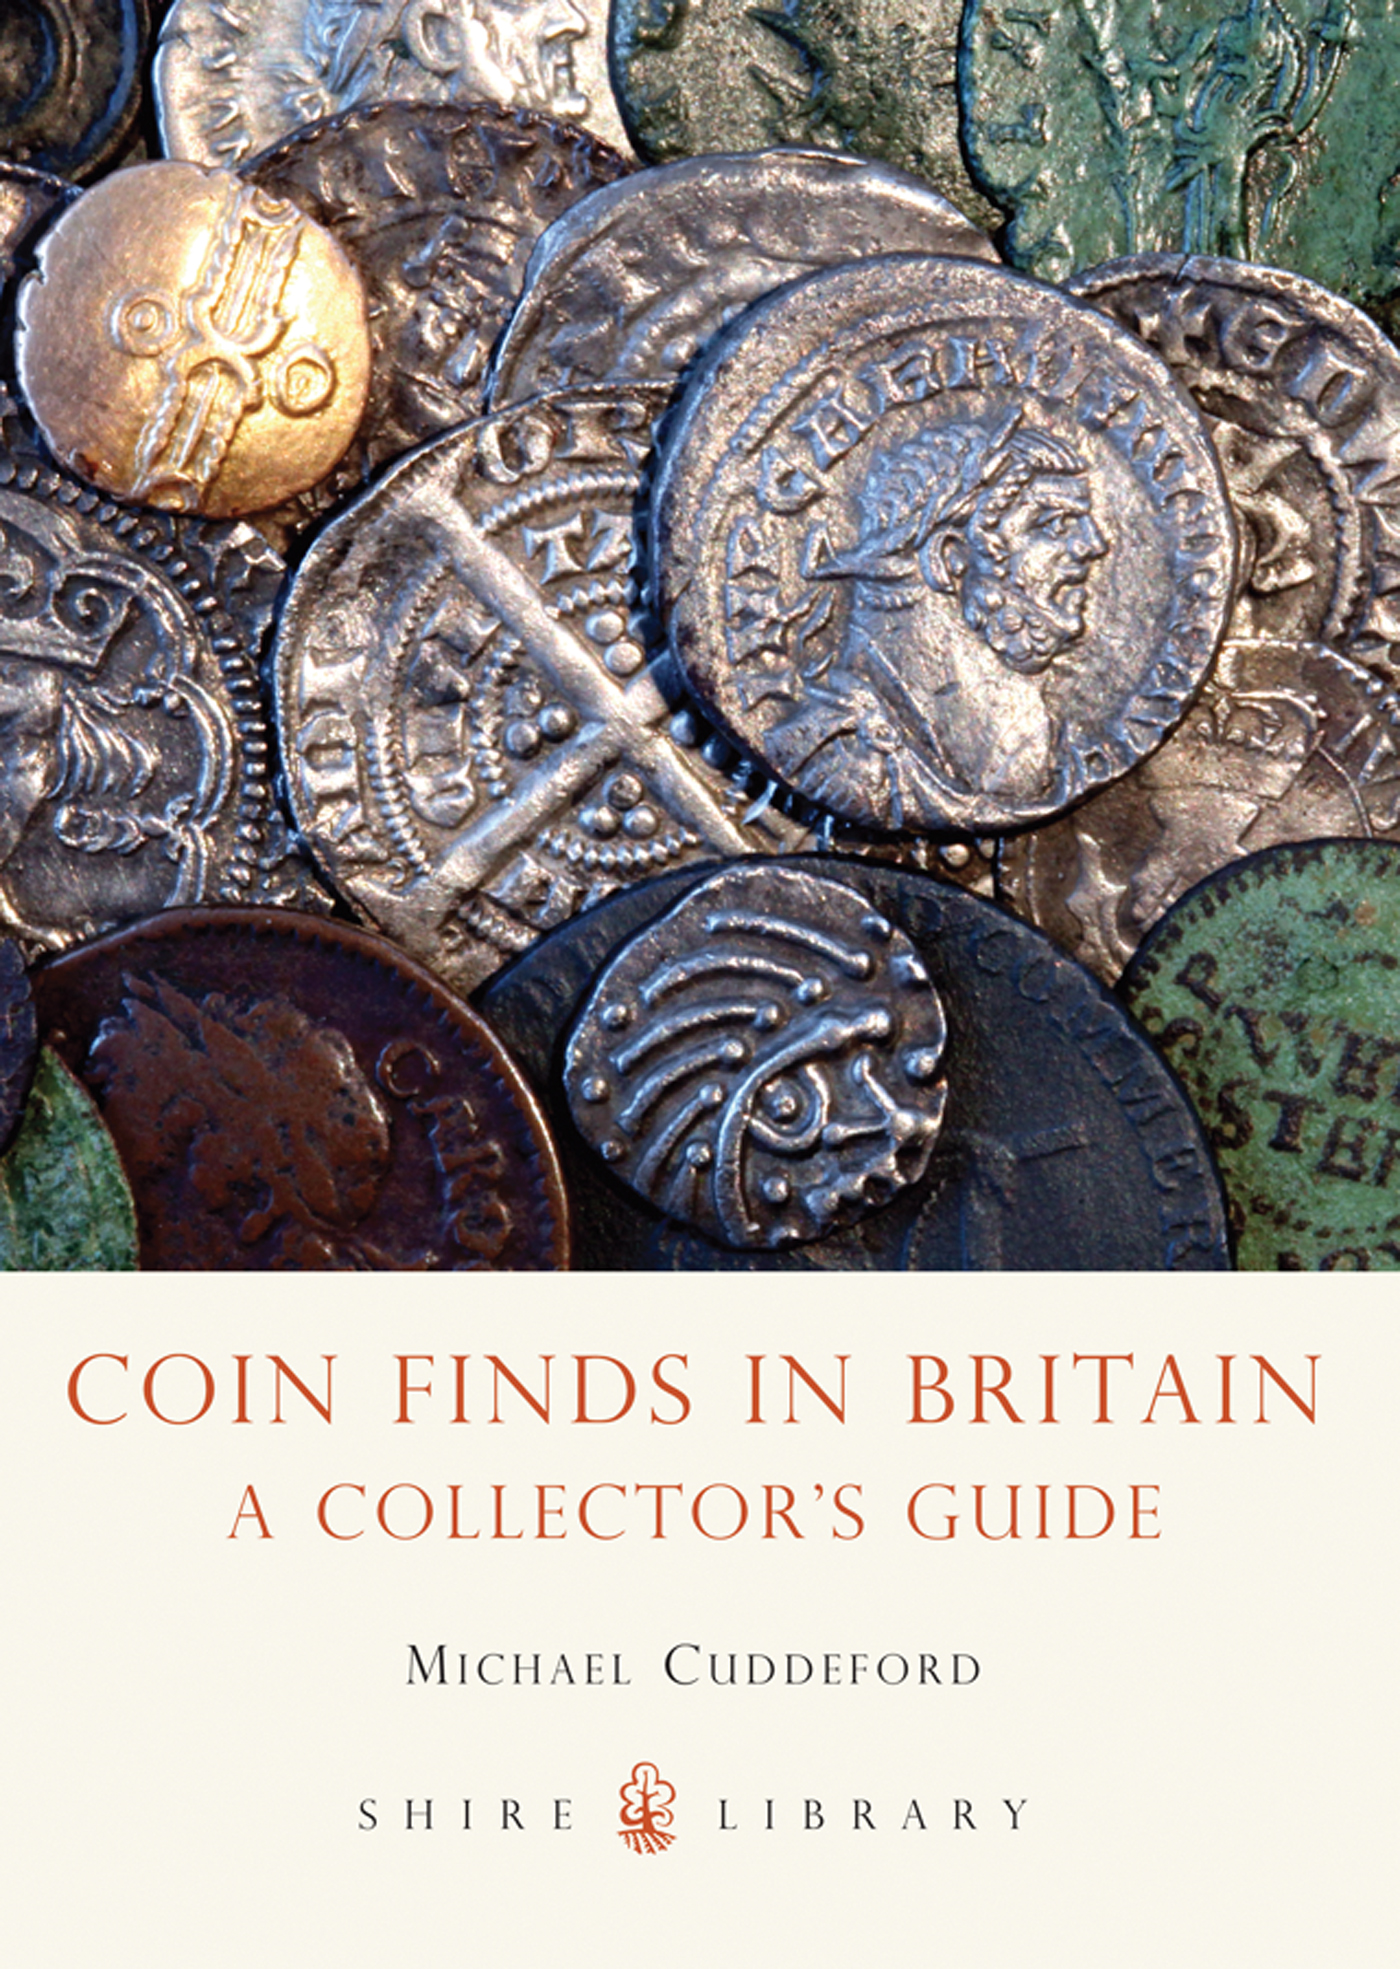 Coin Finds in Britain: A Collector's Guide